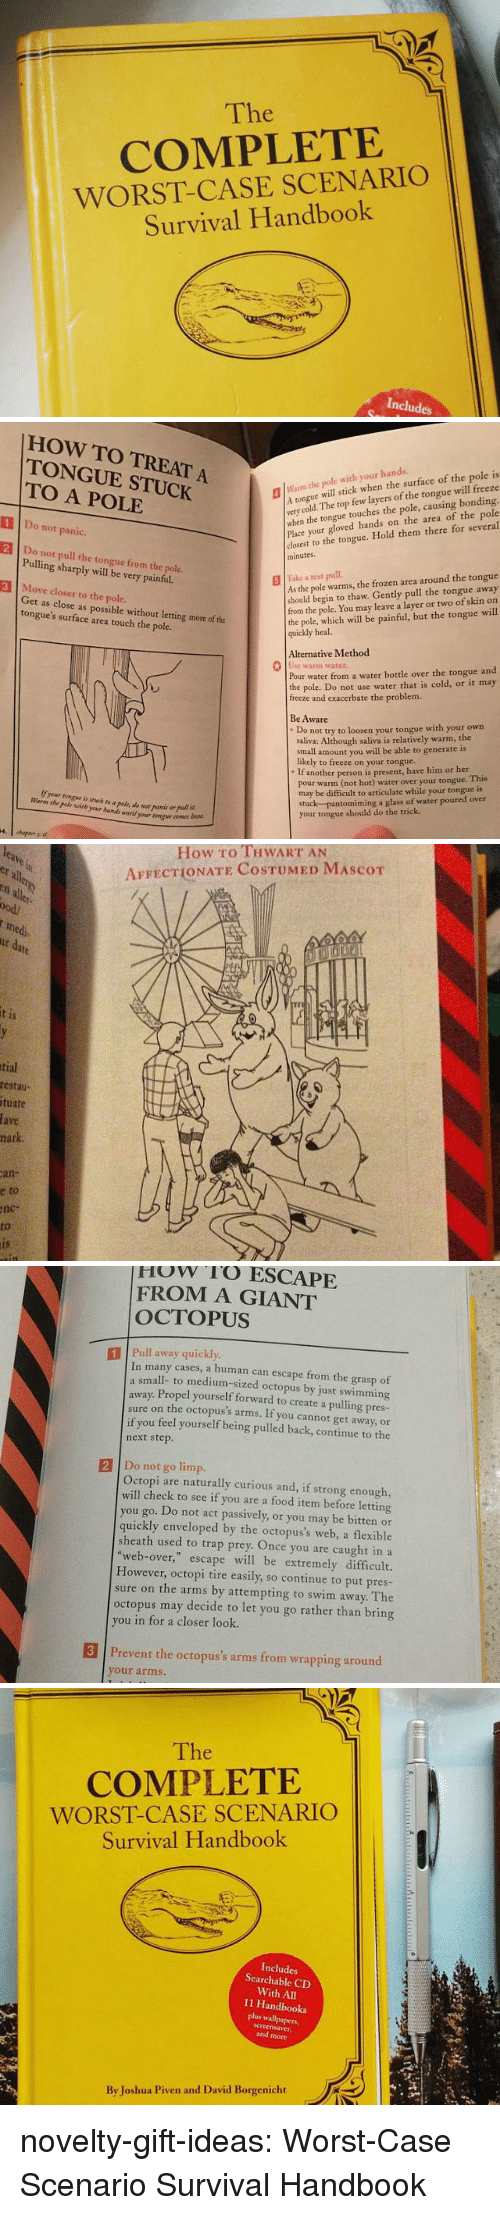 Food, Frozen, and Trap: The  COMPLETE  WORST-CASE SCENARIO  Survival Handbook  Includes   HOW TO TREAT A  TONGUE STUCK  TO A POLE  lWarm the pole with your hands.  Atongue will stick when the surface of the pole is  very  when the tongue touches the pole, causing bonding.  Place your gloved hands on the area of the pole  closest to the tongue. Hold them there for several  minutes  cold. The top few layers of the tongue will freeze  1 Do not panic.  2 Do not pull the tongue from the pole  3 Move closer to the pole.  Pulling sharply will be very painful.  As the pole warms, the frozen area around the tongue  should begin to thaw. Gently pull the tongue away  from the pole. You may leave a layer or two of skin on  the pole, which will be painful, but the tongue will  quickly heal.  | İlke z test pull.  Get as close as possible without letting more of the  tongue's surface area touch the pole.  Alternative Method  0  se warm water  Pour water from a water bottle over the tongue and  the pole. Do not use water that is cold, or it may  freeze and exacerbate the problem.  Be Aware  Do not try to loosen your tongue with your own  saliva: Although saliva is relatively warm, the  small amount you will be able to generate is  likely to freeze on your tongue..  If another person is present, have him or her  pour warm (not hot) water over your tongue. This  may be difficult to articulate while your tongue is  stuck-pantomiming a glass of water poured over  your tongue should do the trick  Warm the pole wih yr ui wti  your ton   How To THWART AN  AFFECTIONATE COSTUMED MAScoT  er  all  ood/  medi  1S  tial  restau  tuate  fave  hark  an-  e  to  nc-  to   How rO ESCAPE  FROM A GIANT  OCTOPUS  1 Pull away quickly  In many cases, a human can escape from the grasp of  small- to medium-sized octopus by just swimming  away. Propel yourself forward to create a pulling pres-  sure on the octopus's arms. If you cannot get away, or  if you feel yourself being pulled back, continue to the  